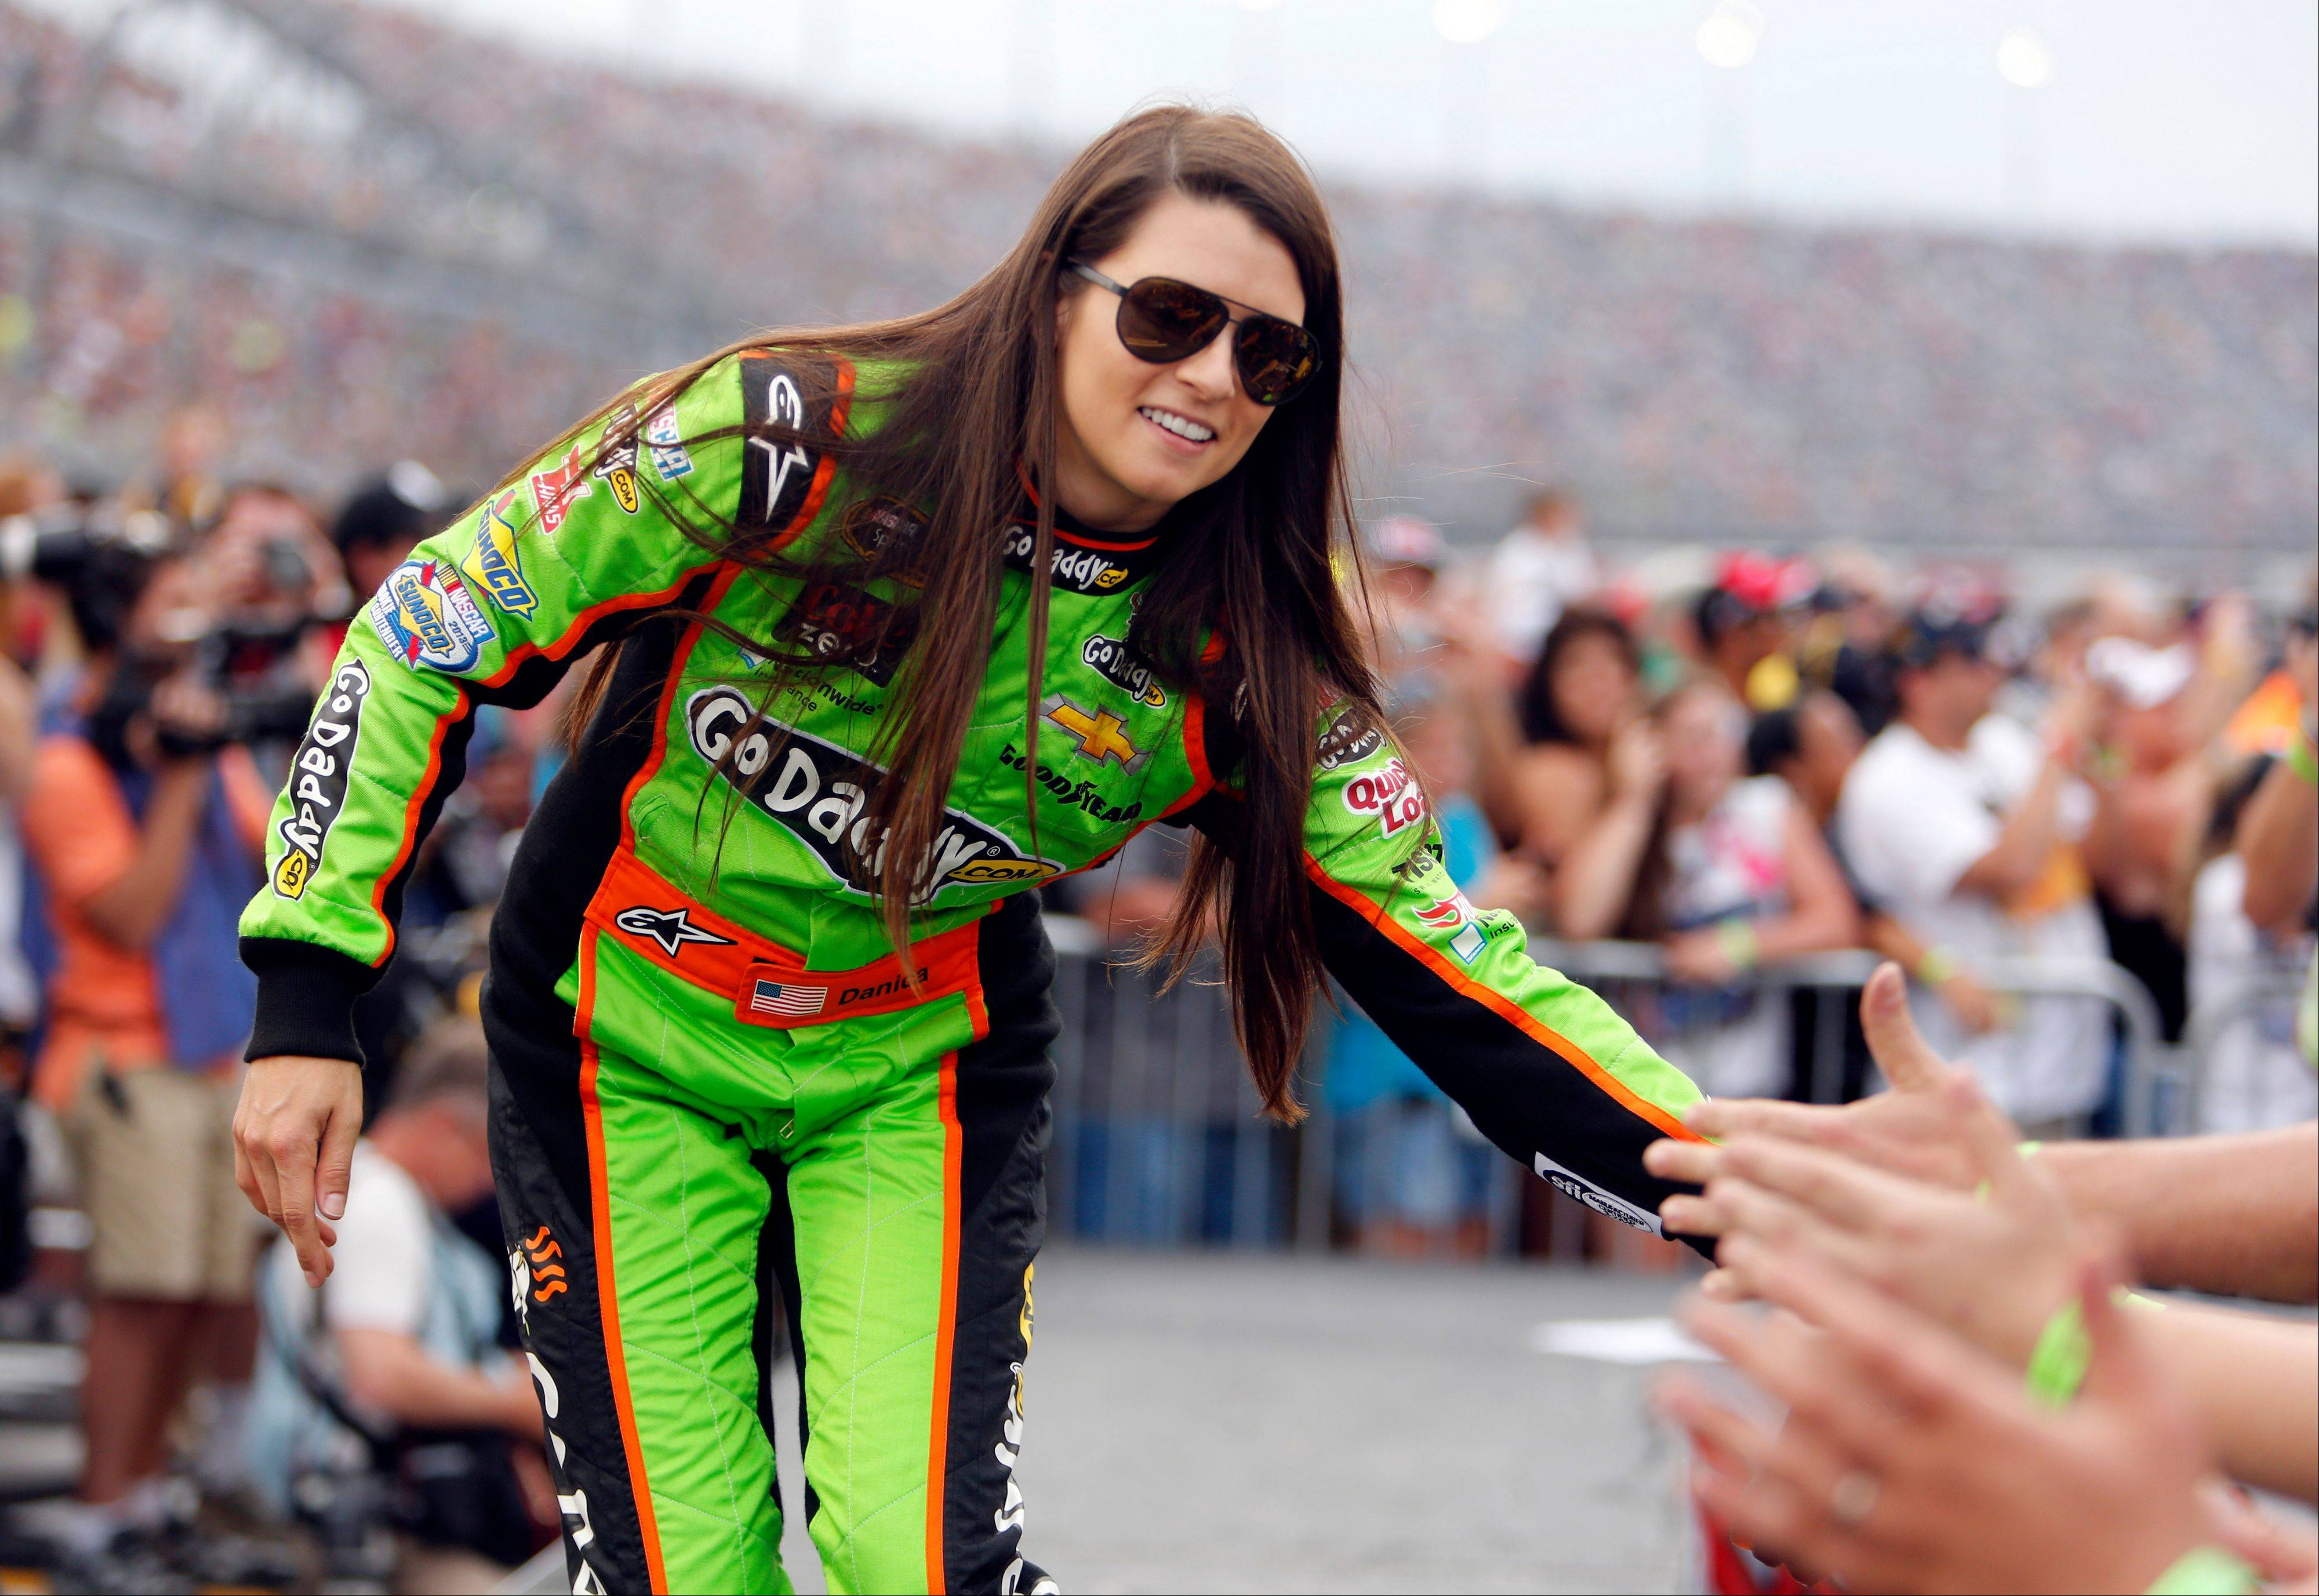 New country music fan Danica Patrick will co-host the American Country Awards Tuesday on FOX with Trace Adkins.